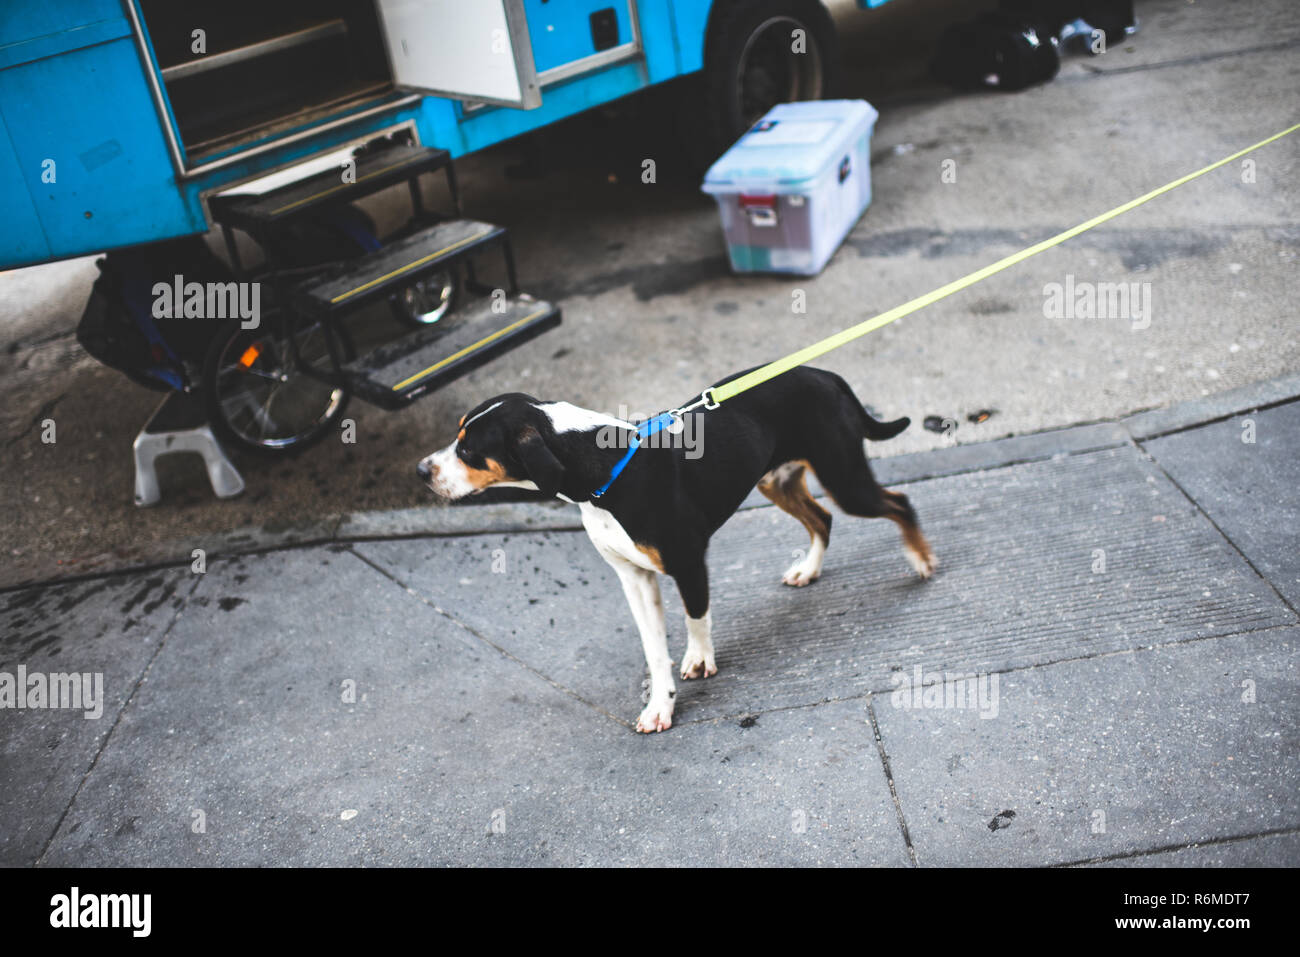 Animal adoption campaign van in Union Square, New York - Stock Image